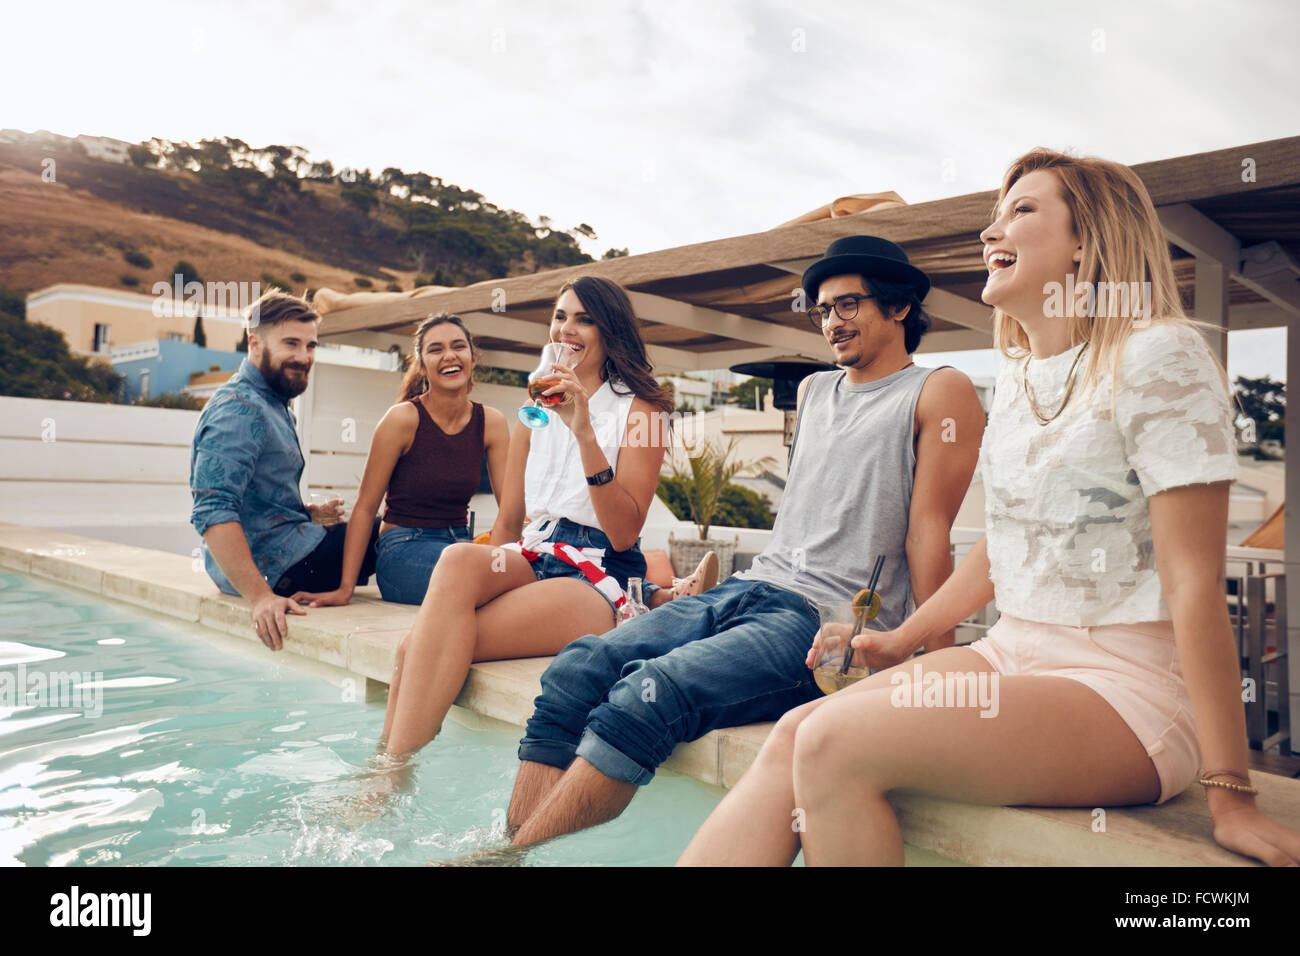 Young people drinking cocktails by the pool during party. Young friends laughing while sitting by a swimming pool. - Stock Image